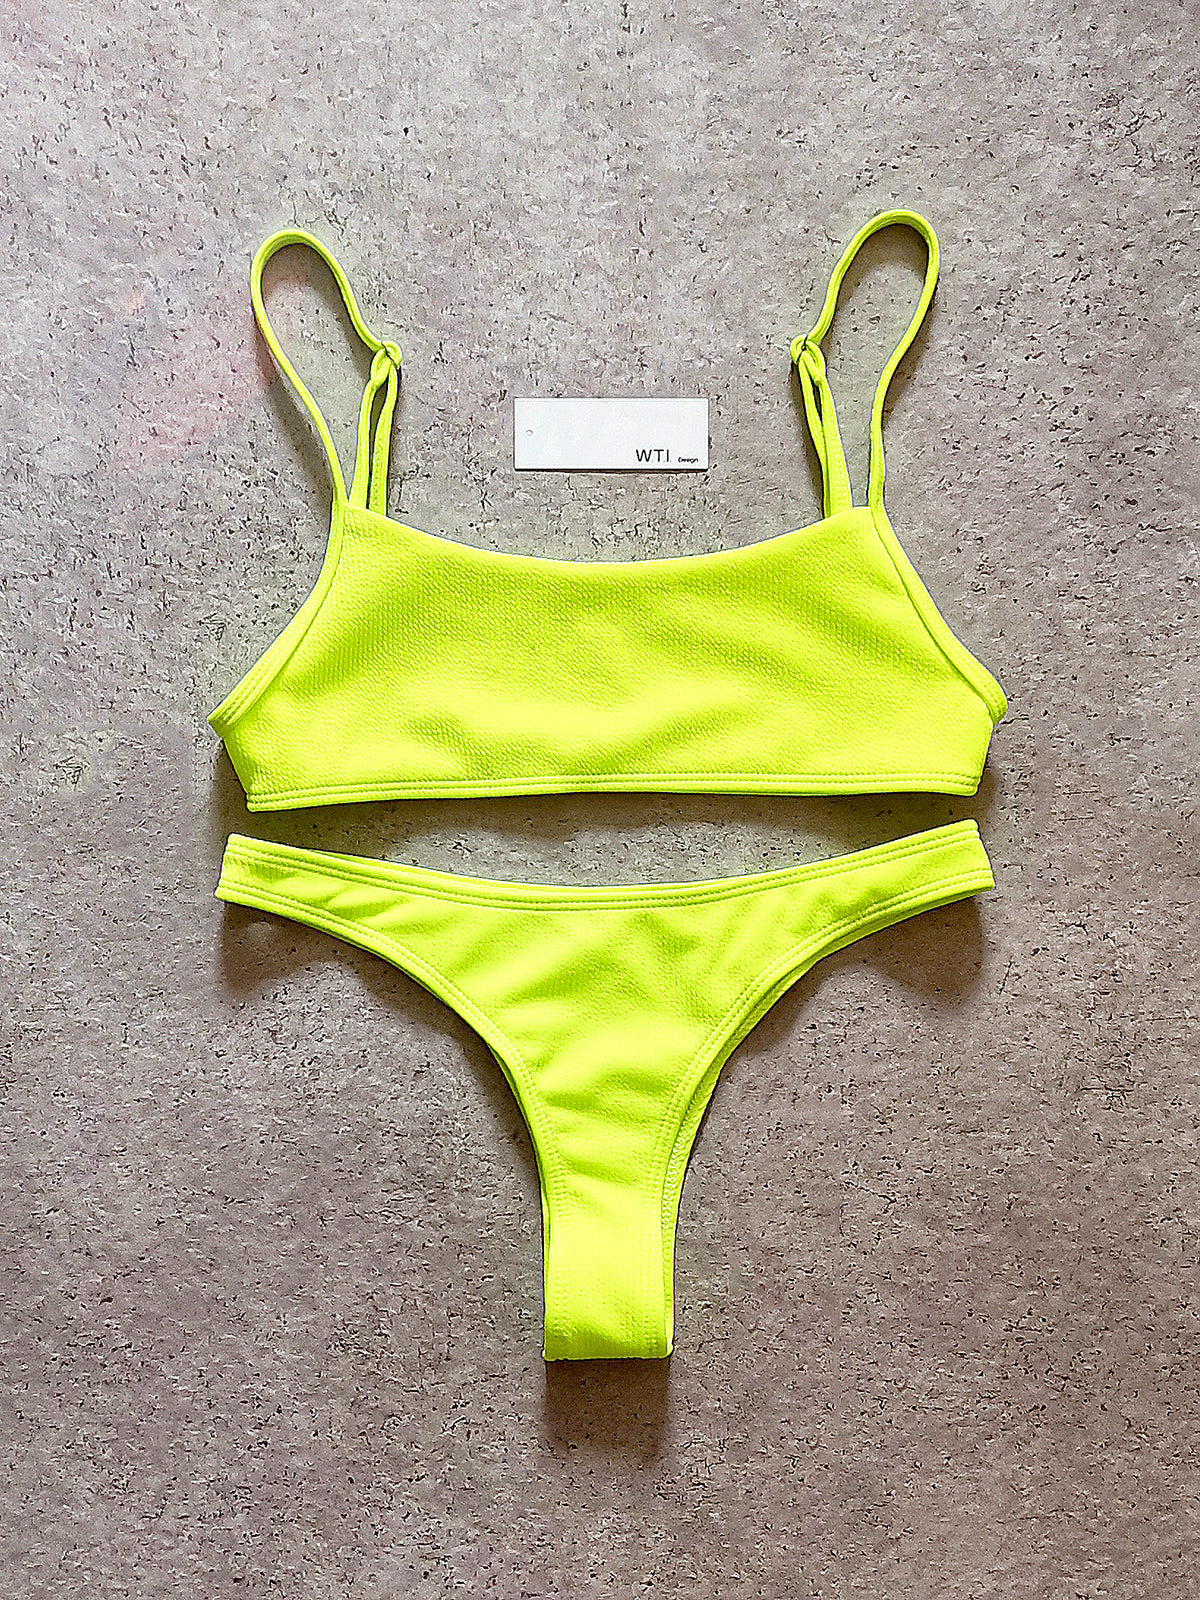 Ribbed Sporty Crop Top High Cut Bikini Swimsuit 1109